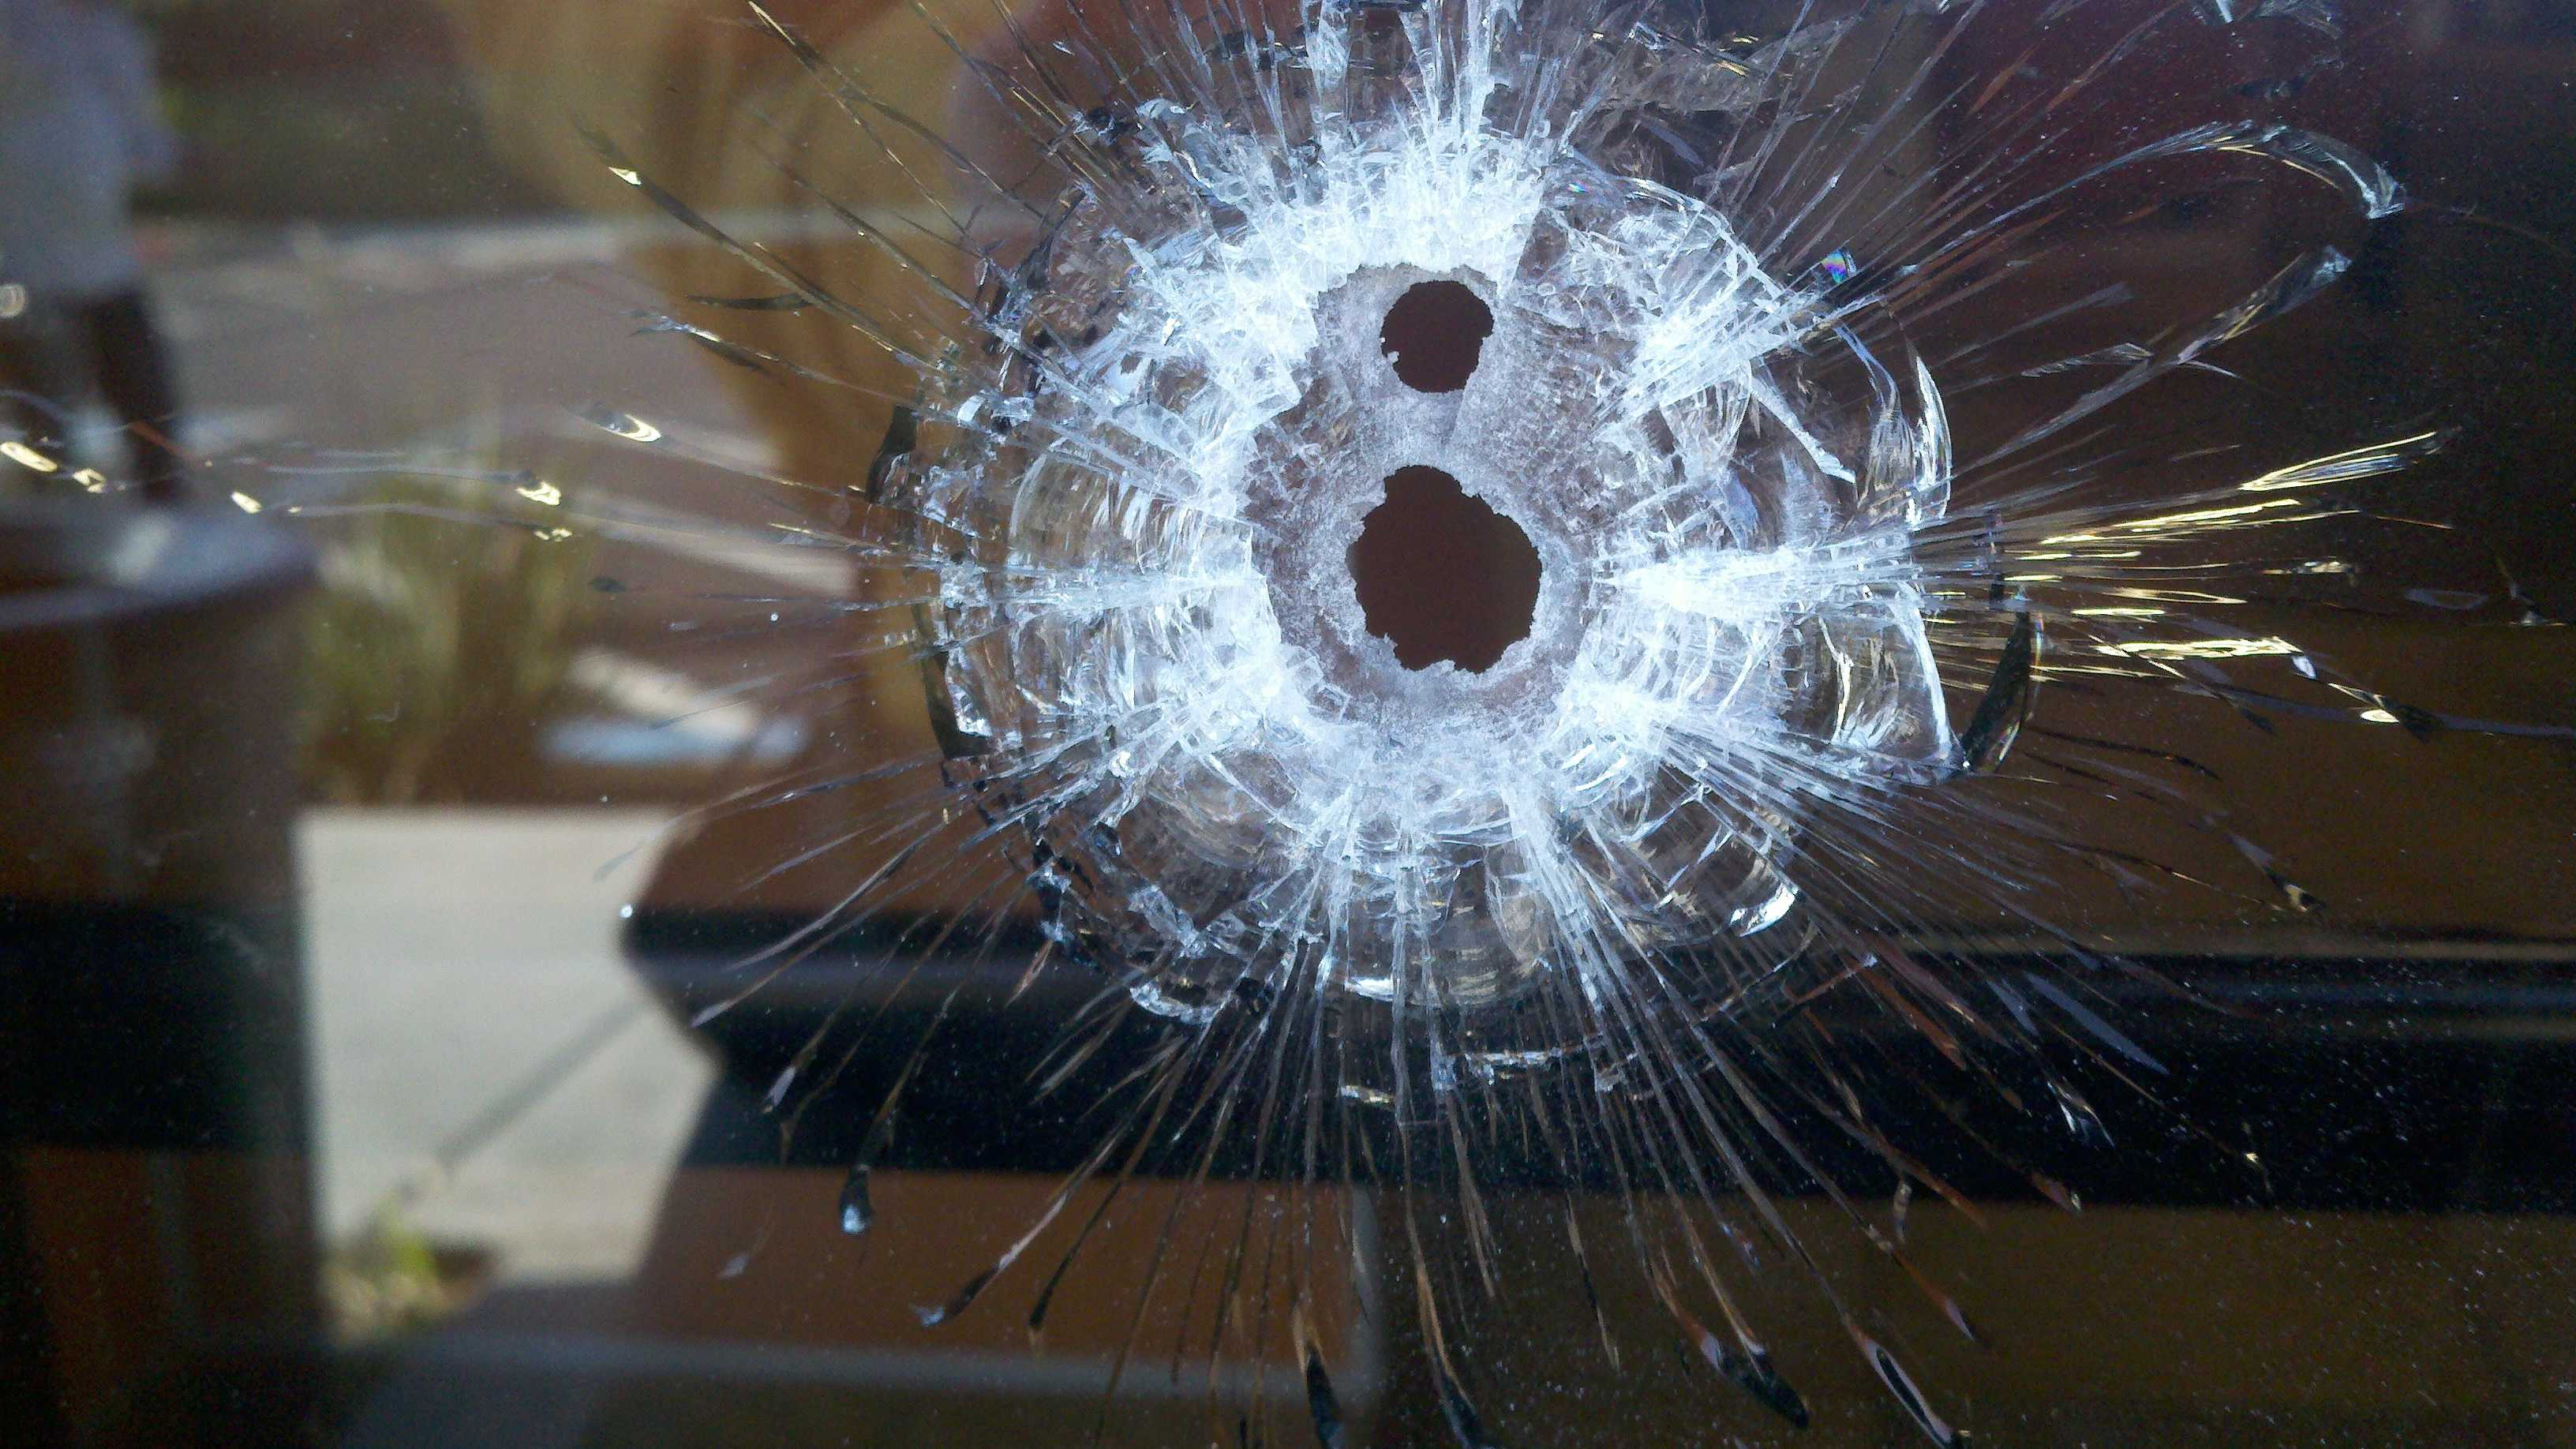 A bullet pierced a glass door at the Jack in the Box.